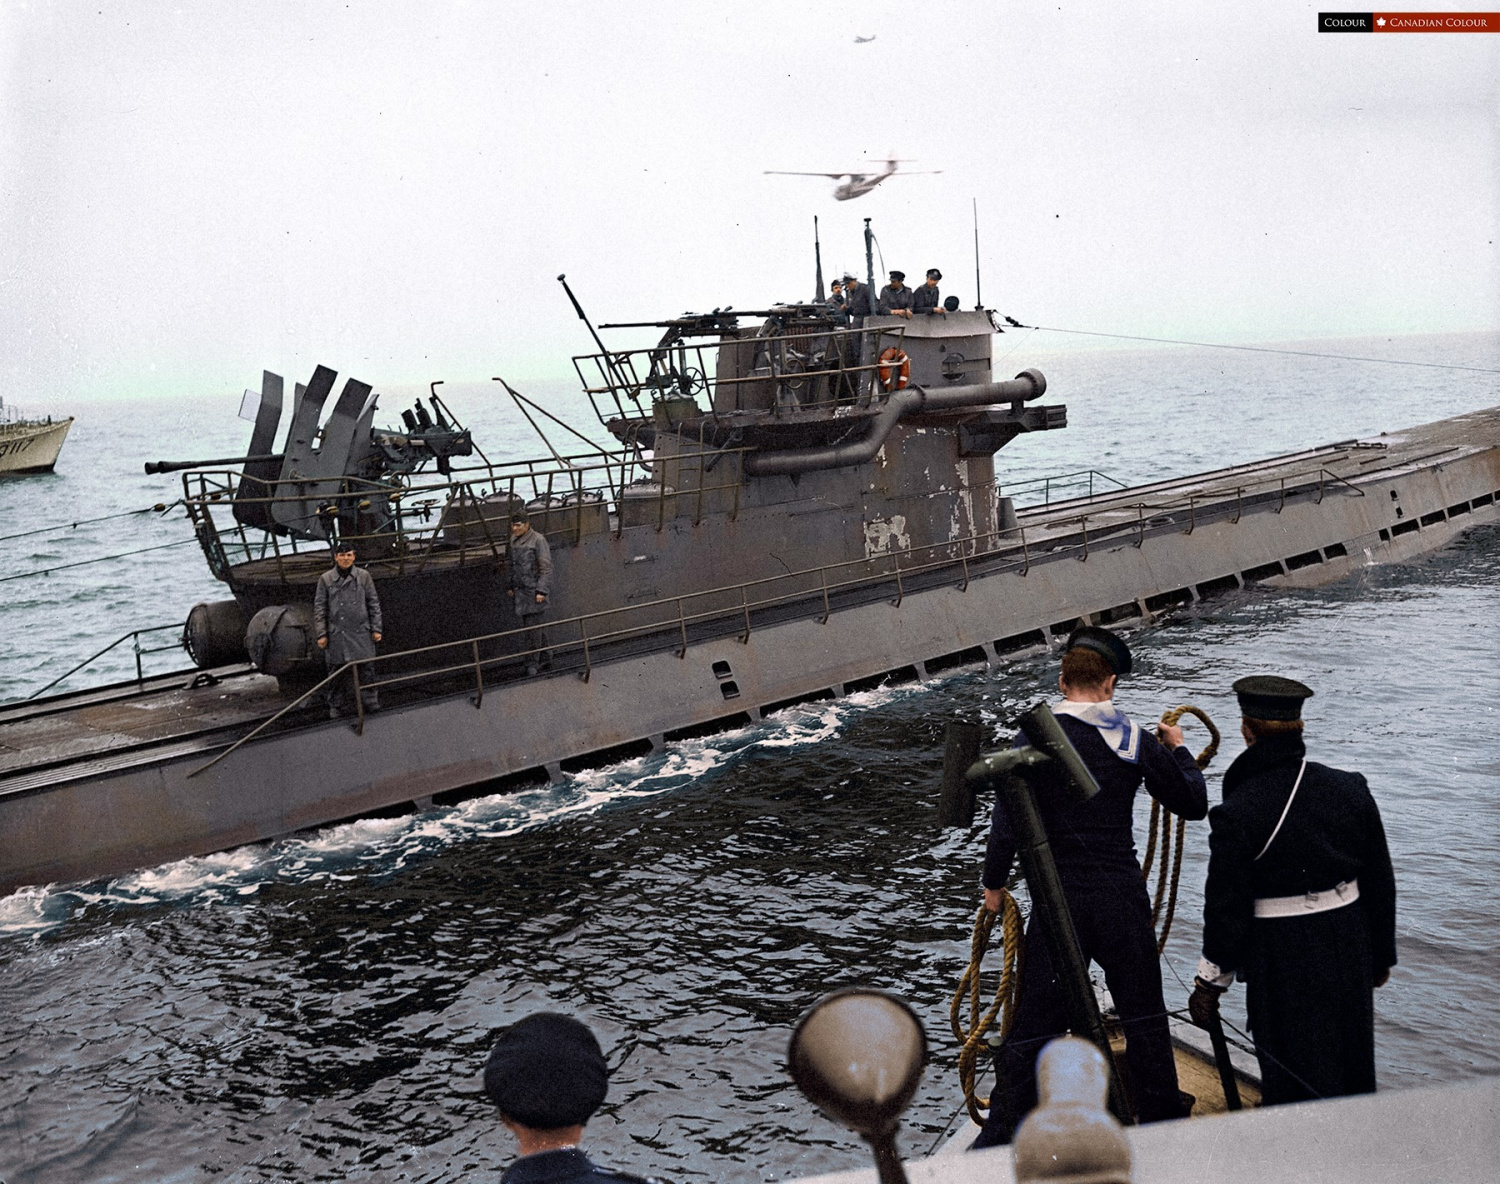 20 - Colorized photo of a German U-889 surrendering to a Canadian built Fairmile Q-117 off Shelburne Nova Scotia May, 1945